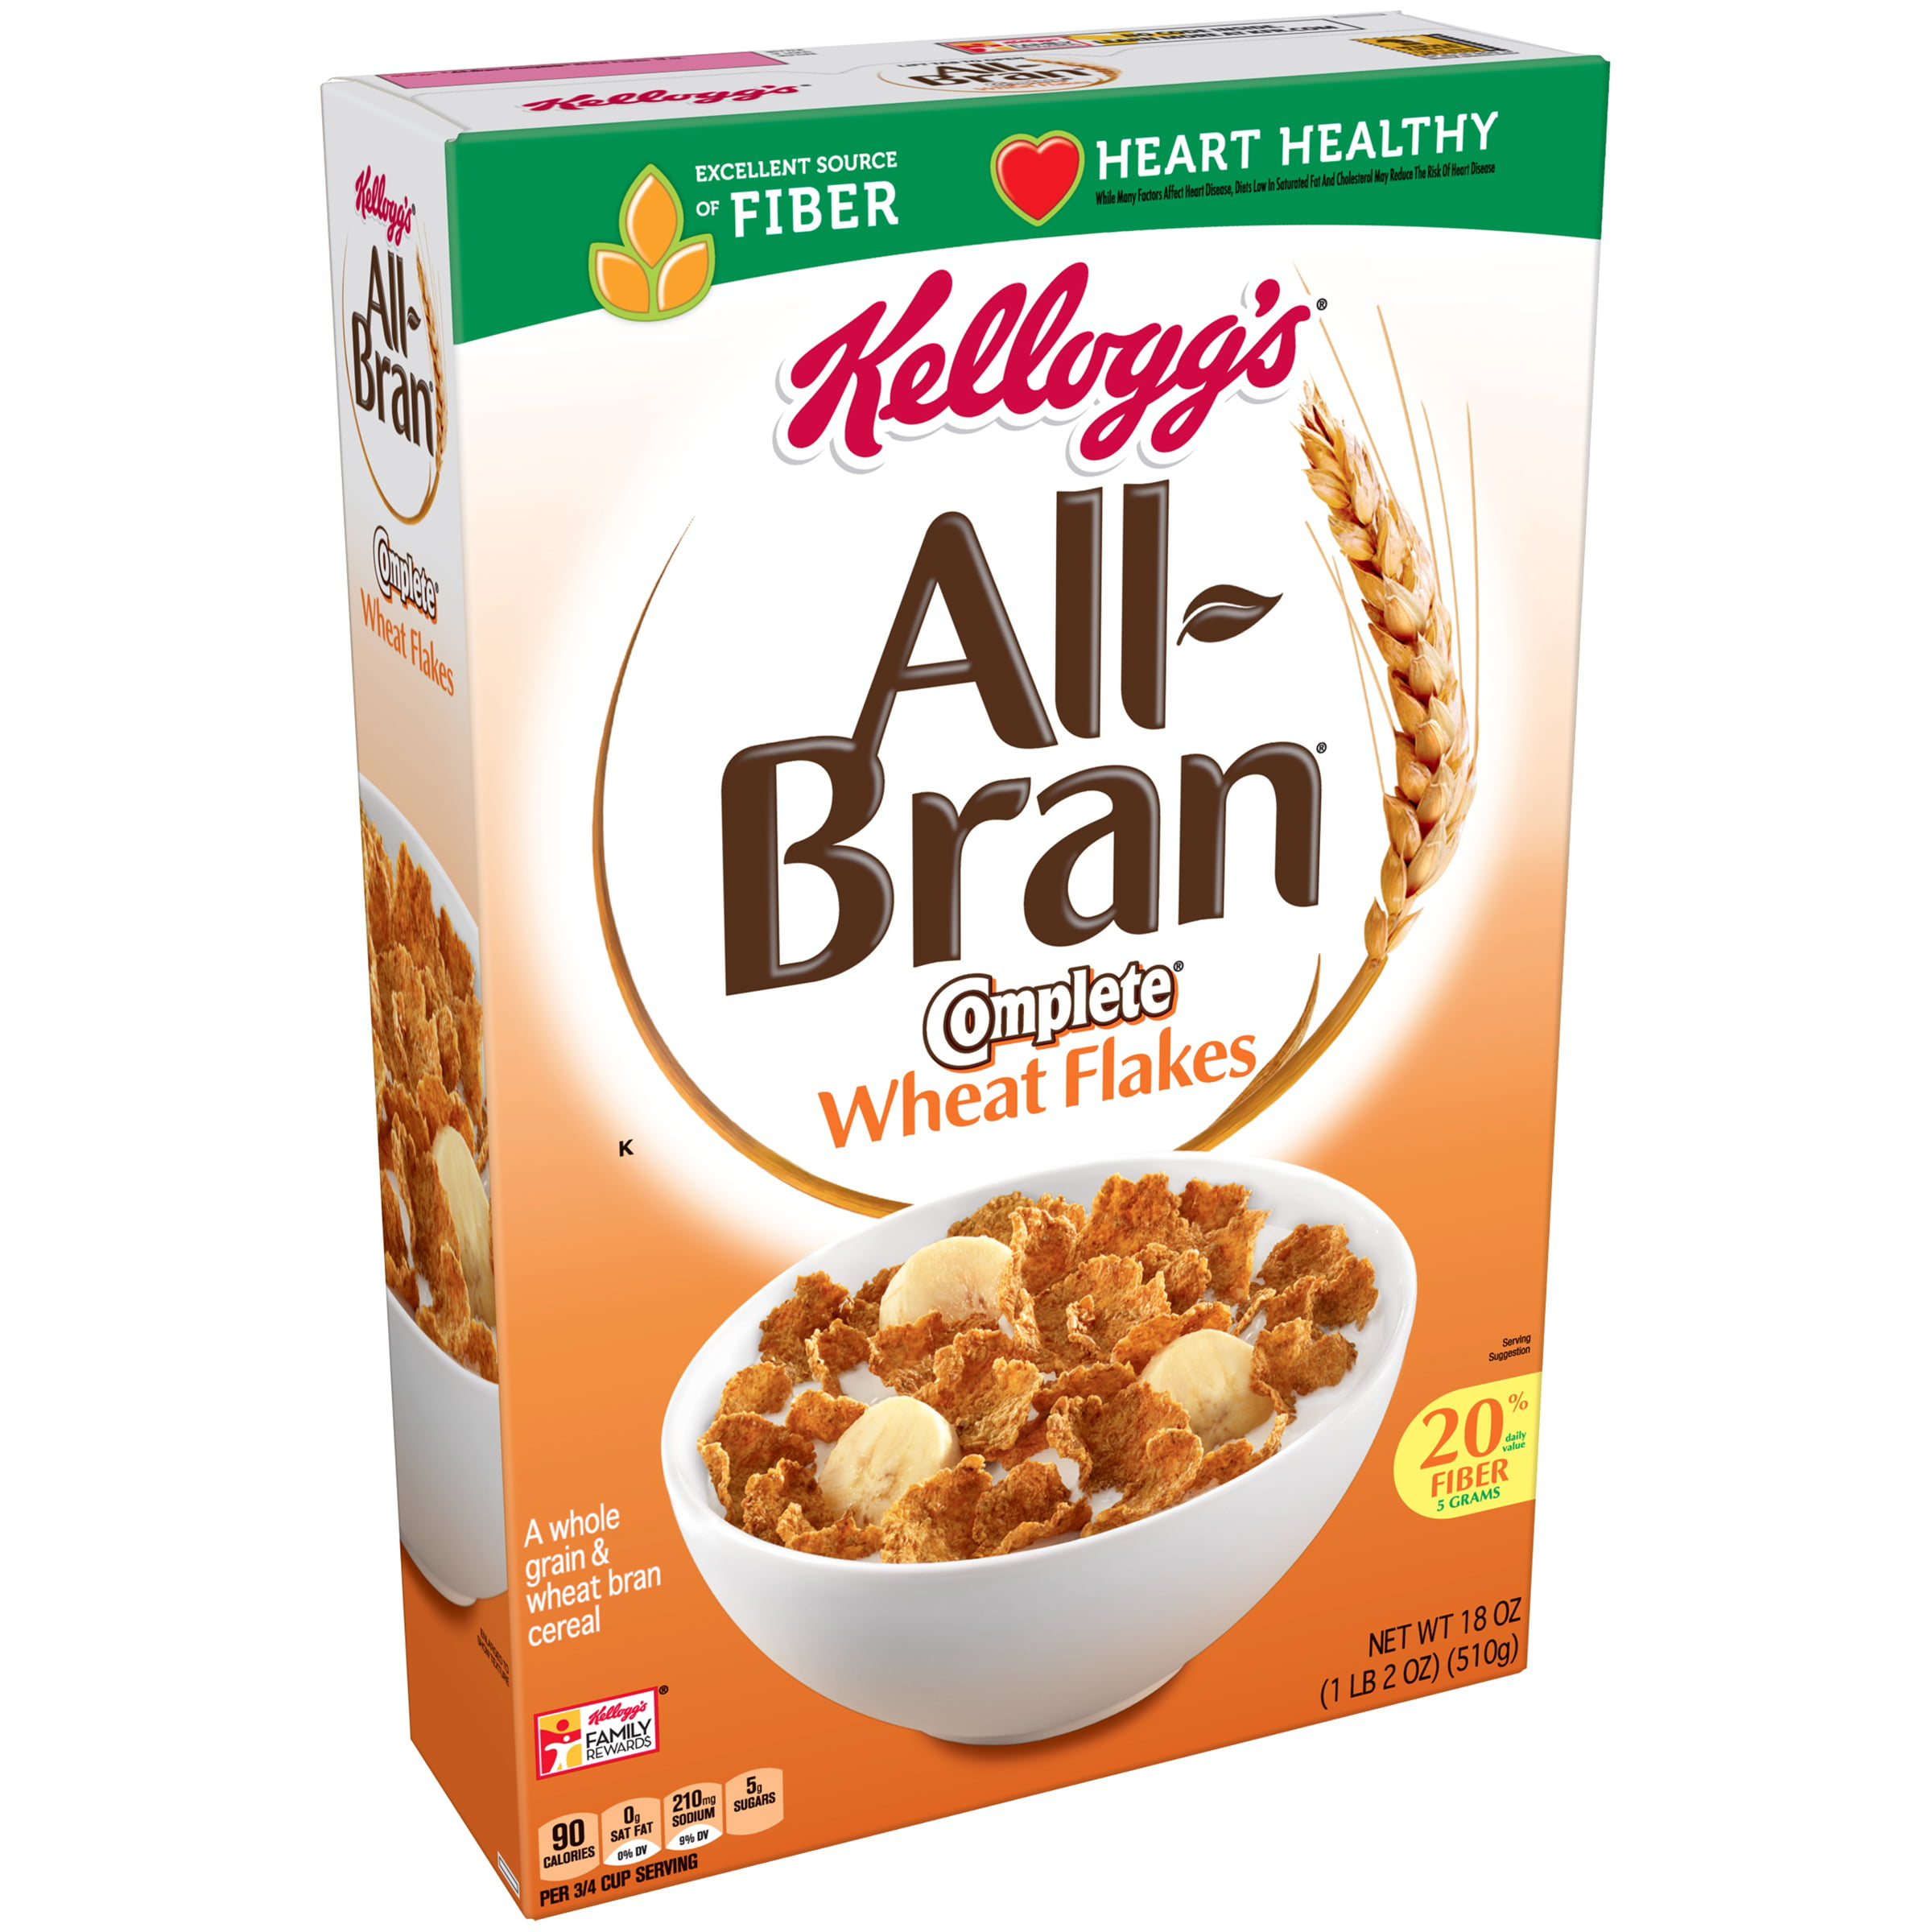 Kellogg's All-Bran Complete Wheat Flakes Breakfast Cereal